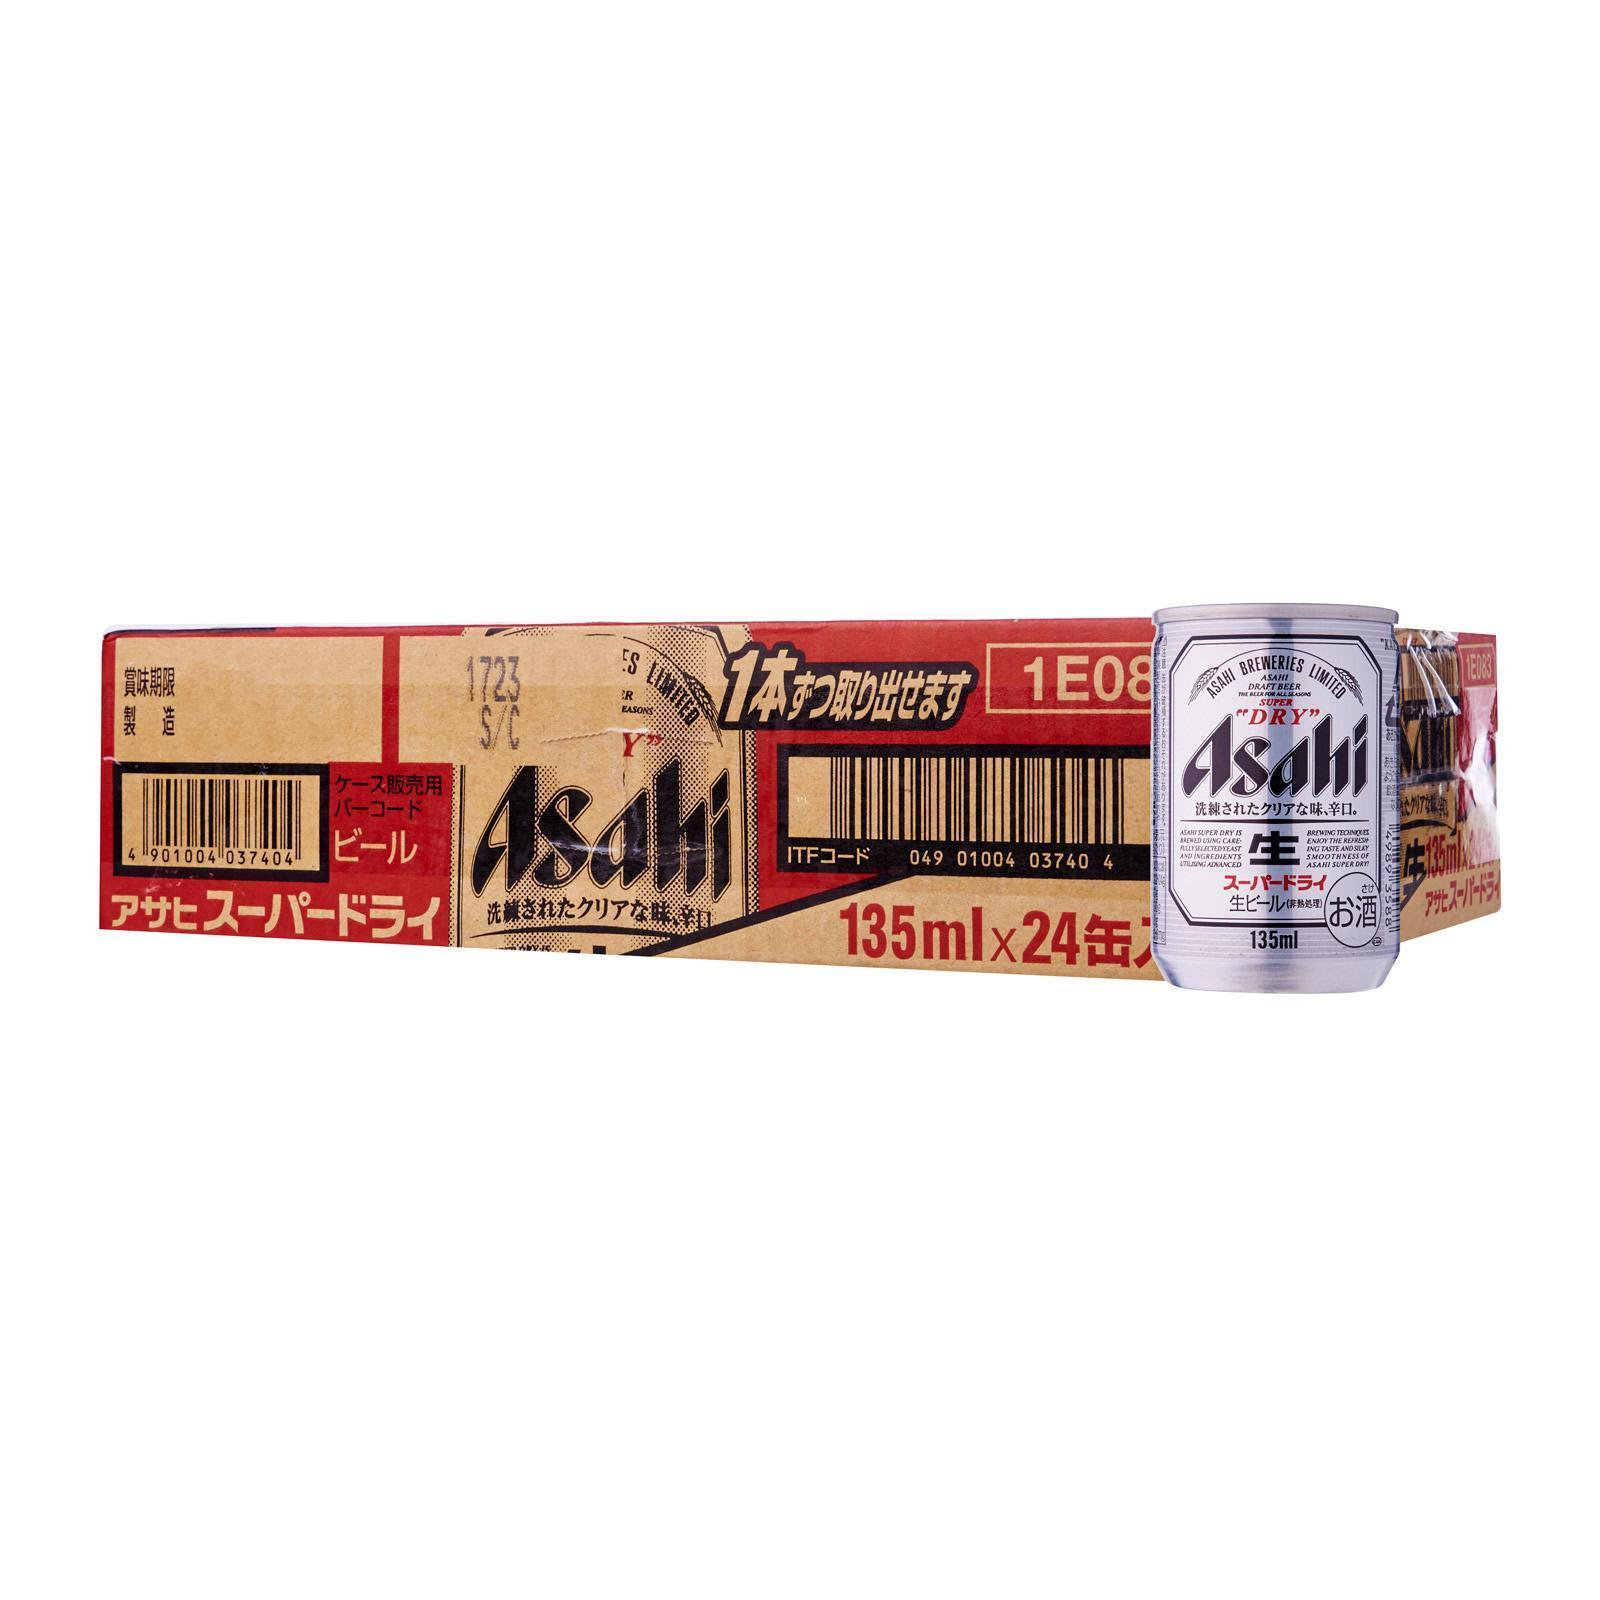 Asahi Mini Cans - Case - By Oak and Barrel